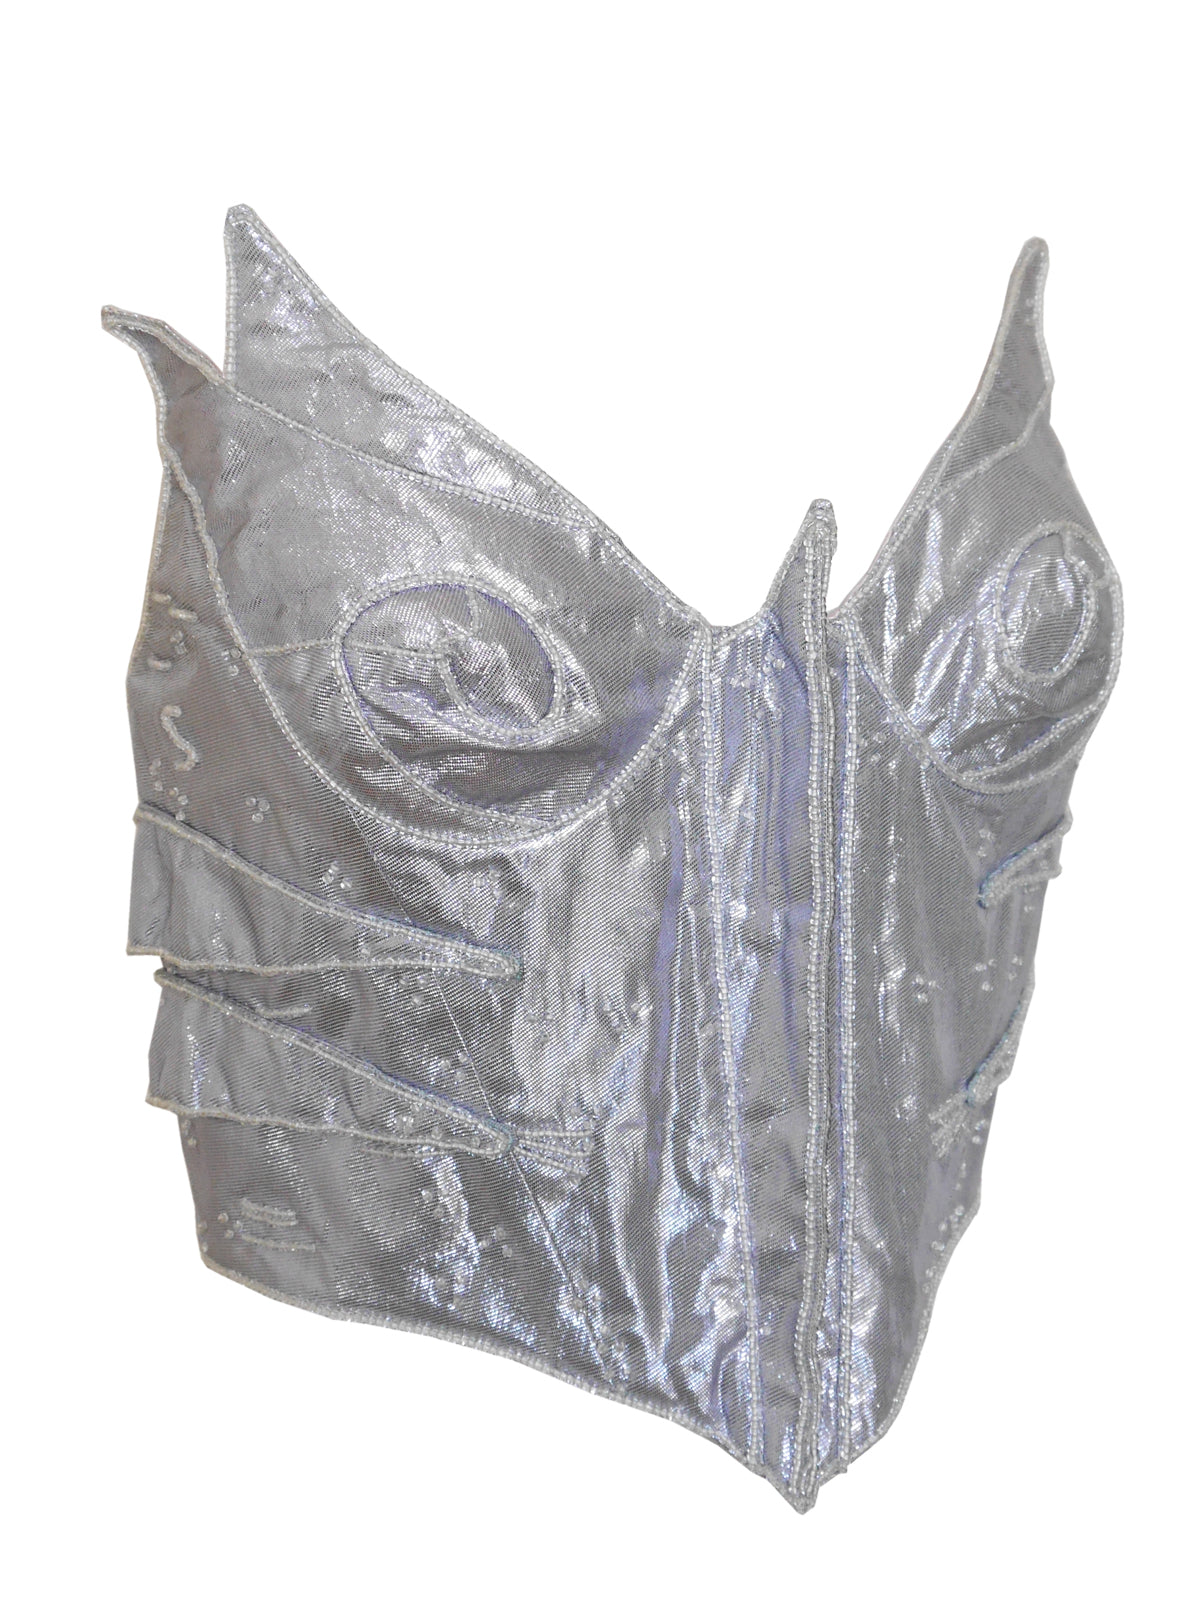 THIERRY MUGLER S/S 1989 Vintage Couture Beaded Bustier Top Metallic Silver Size S